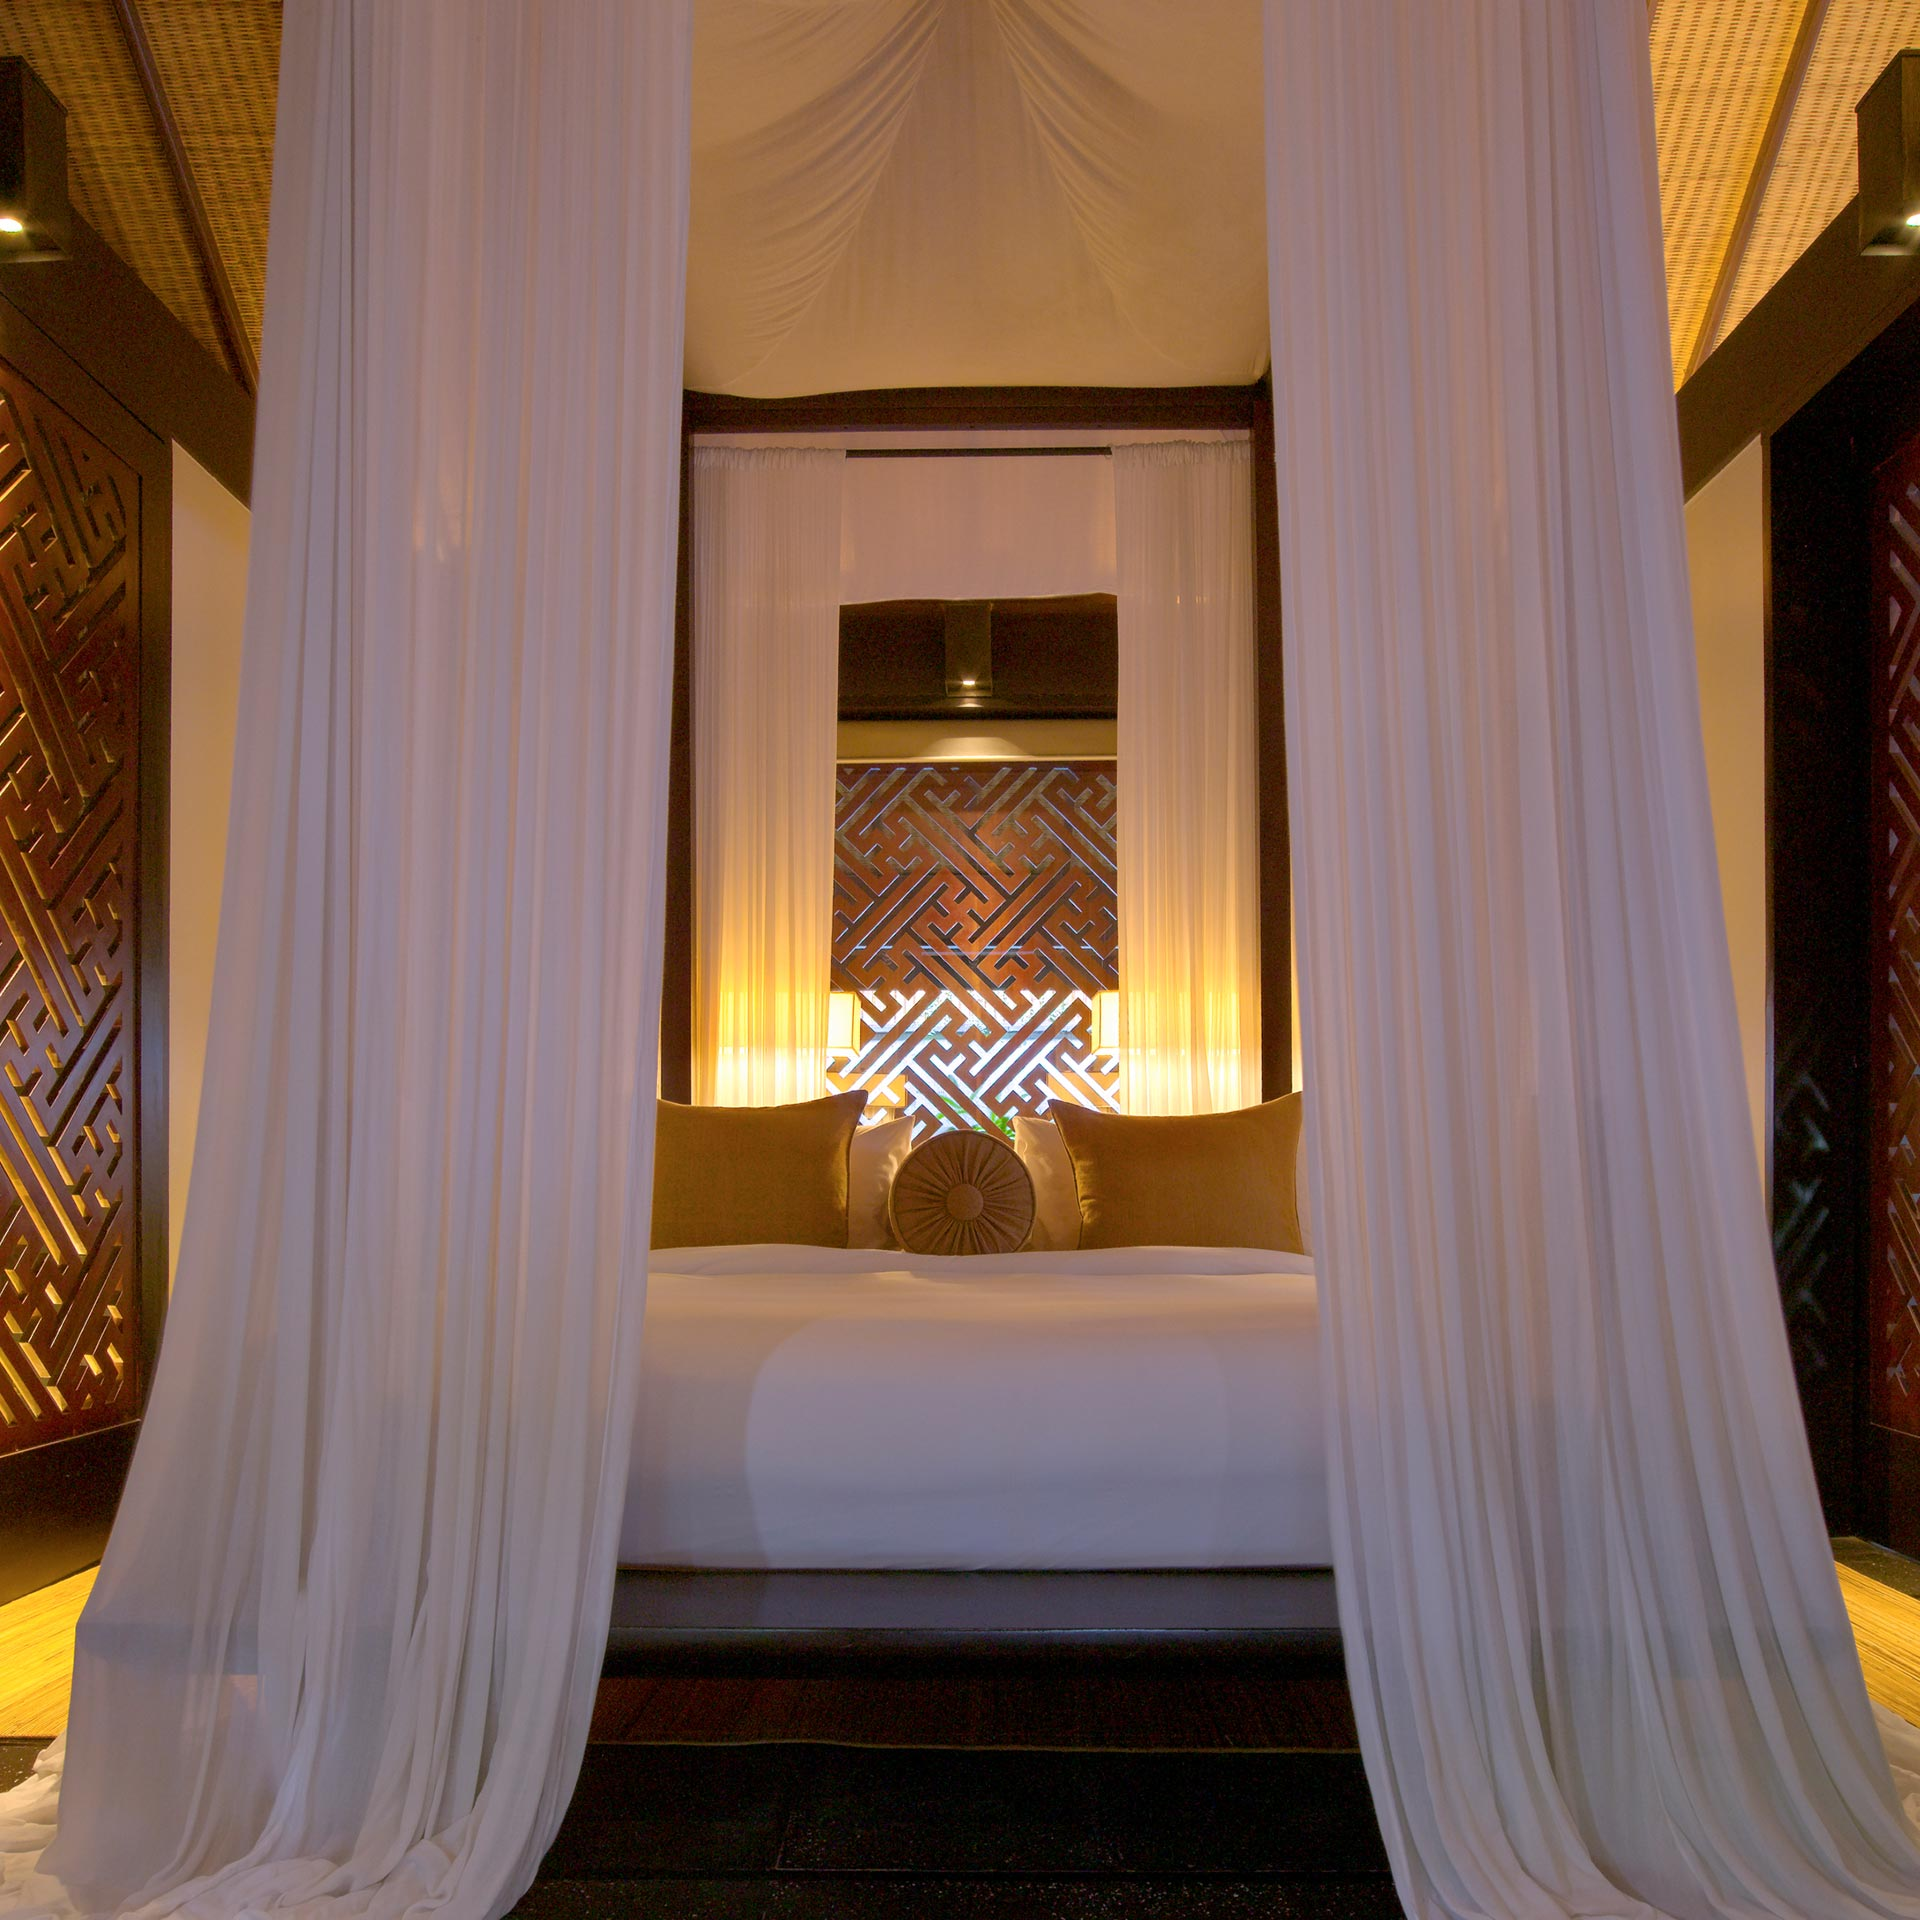 Bedroom at The Legian Club | Luxury hotel SEM | Legian Hotel Management